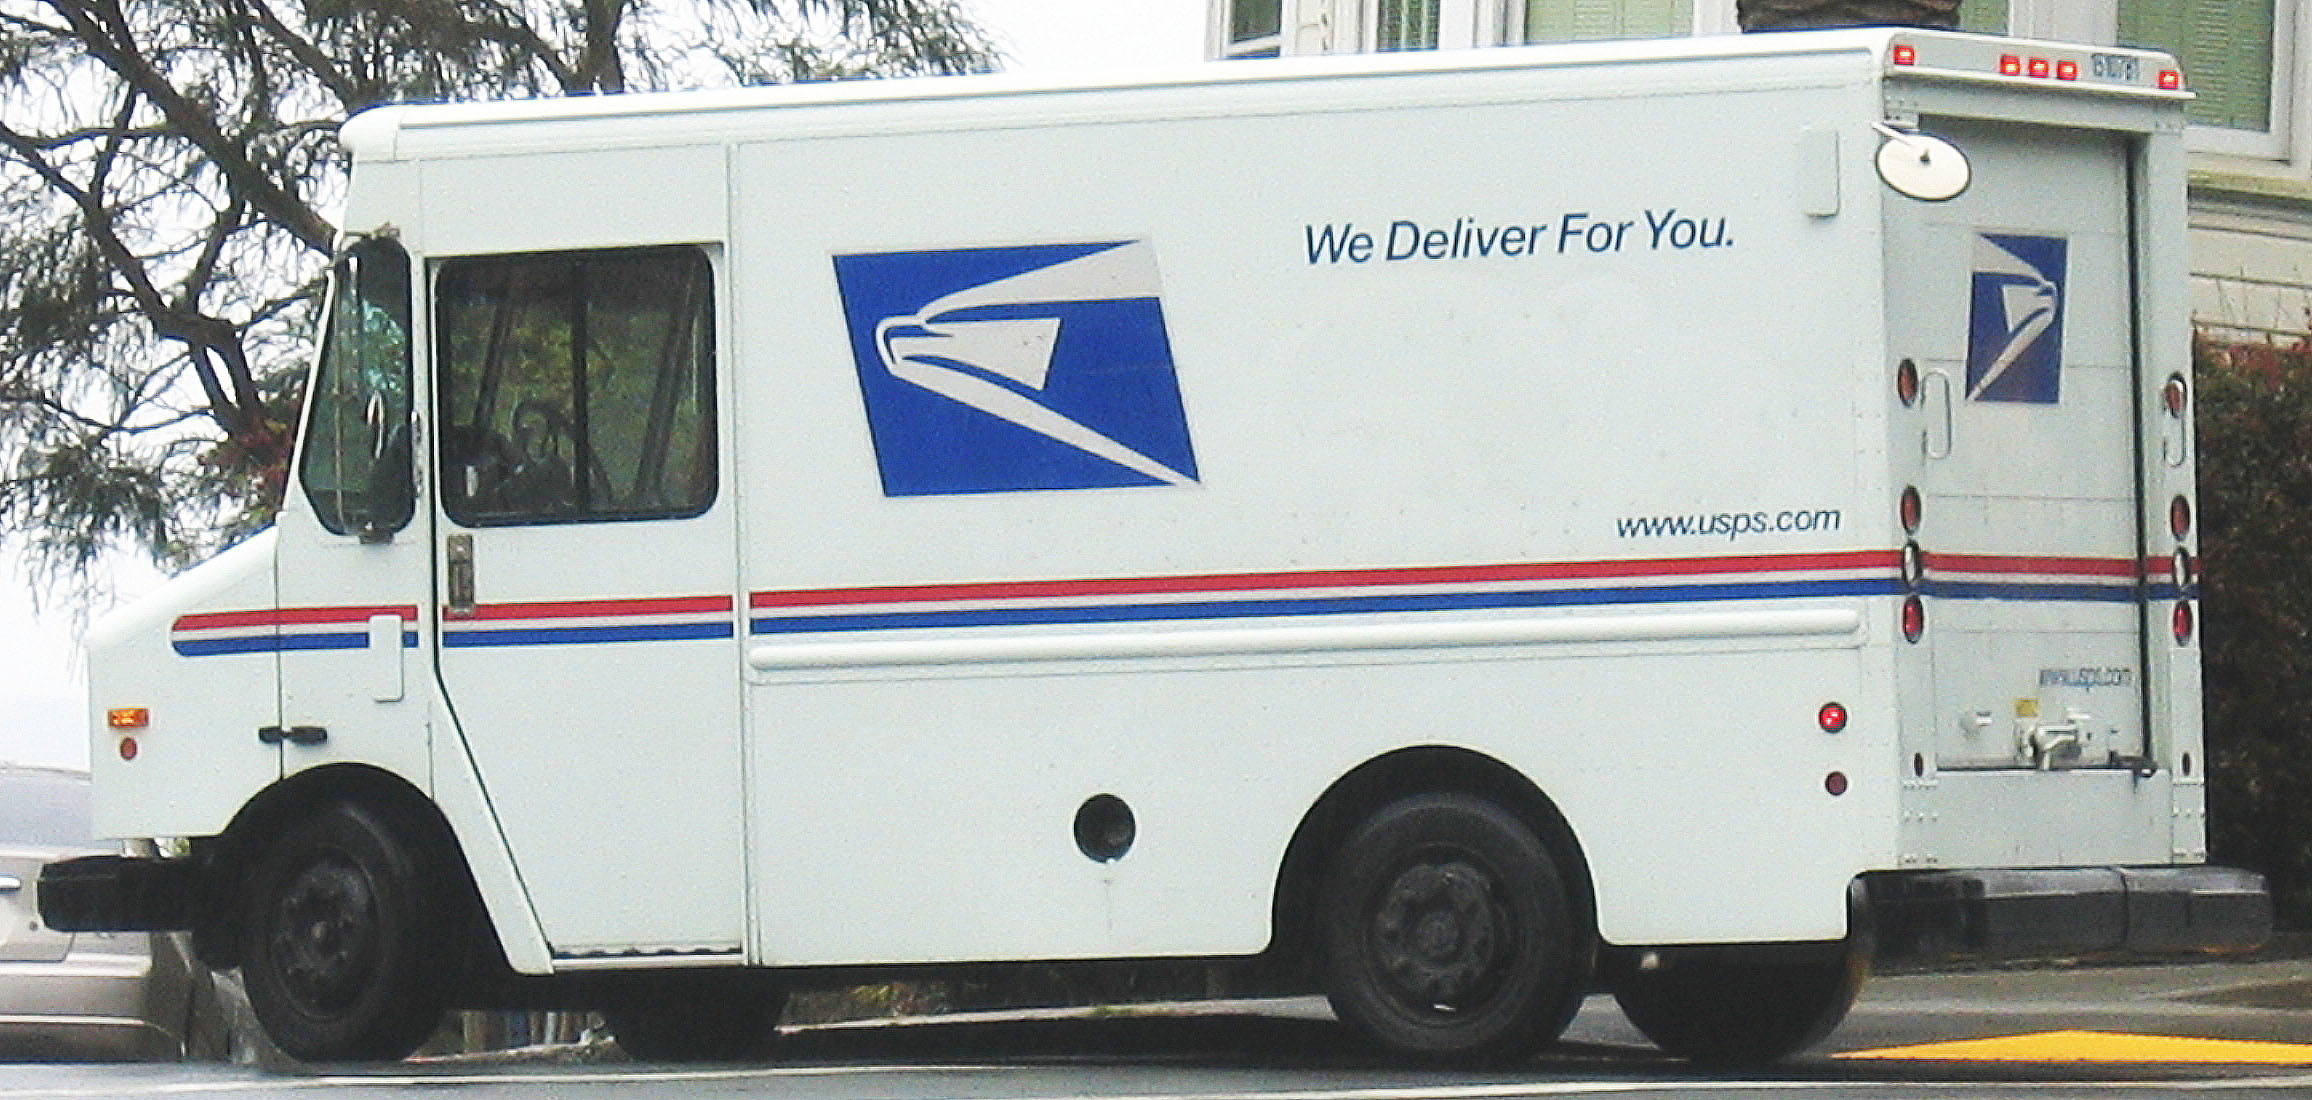 File:United States Postal Service Truck.jpg - Wikipedia, the free ...